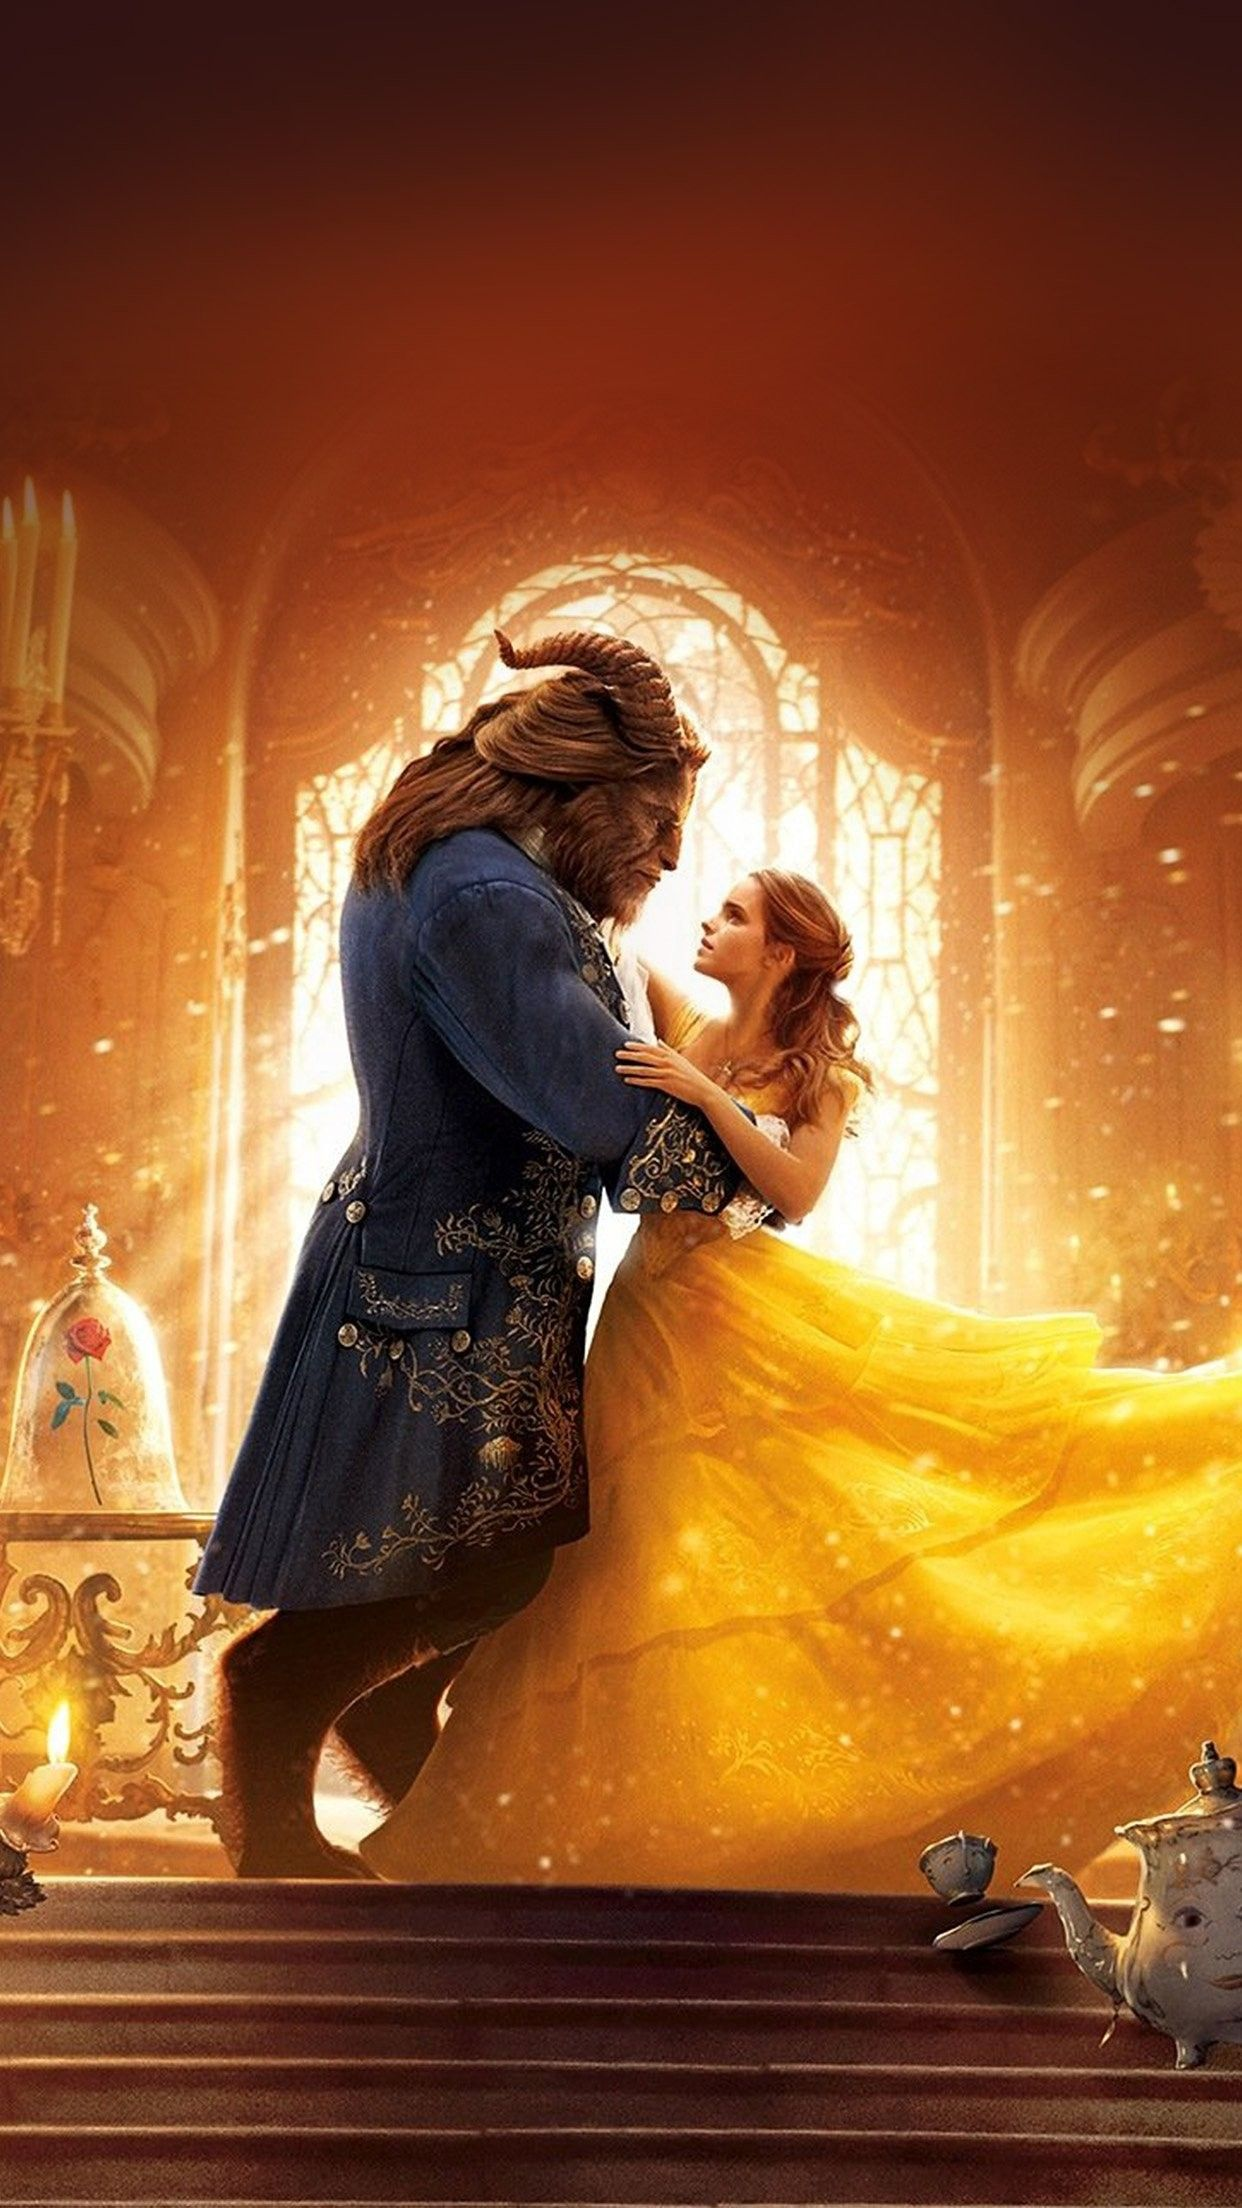 Pin by sandeep Singh on Wallpaper Beauty and the beast